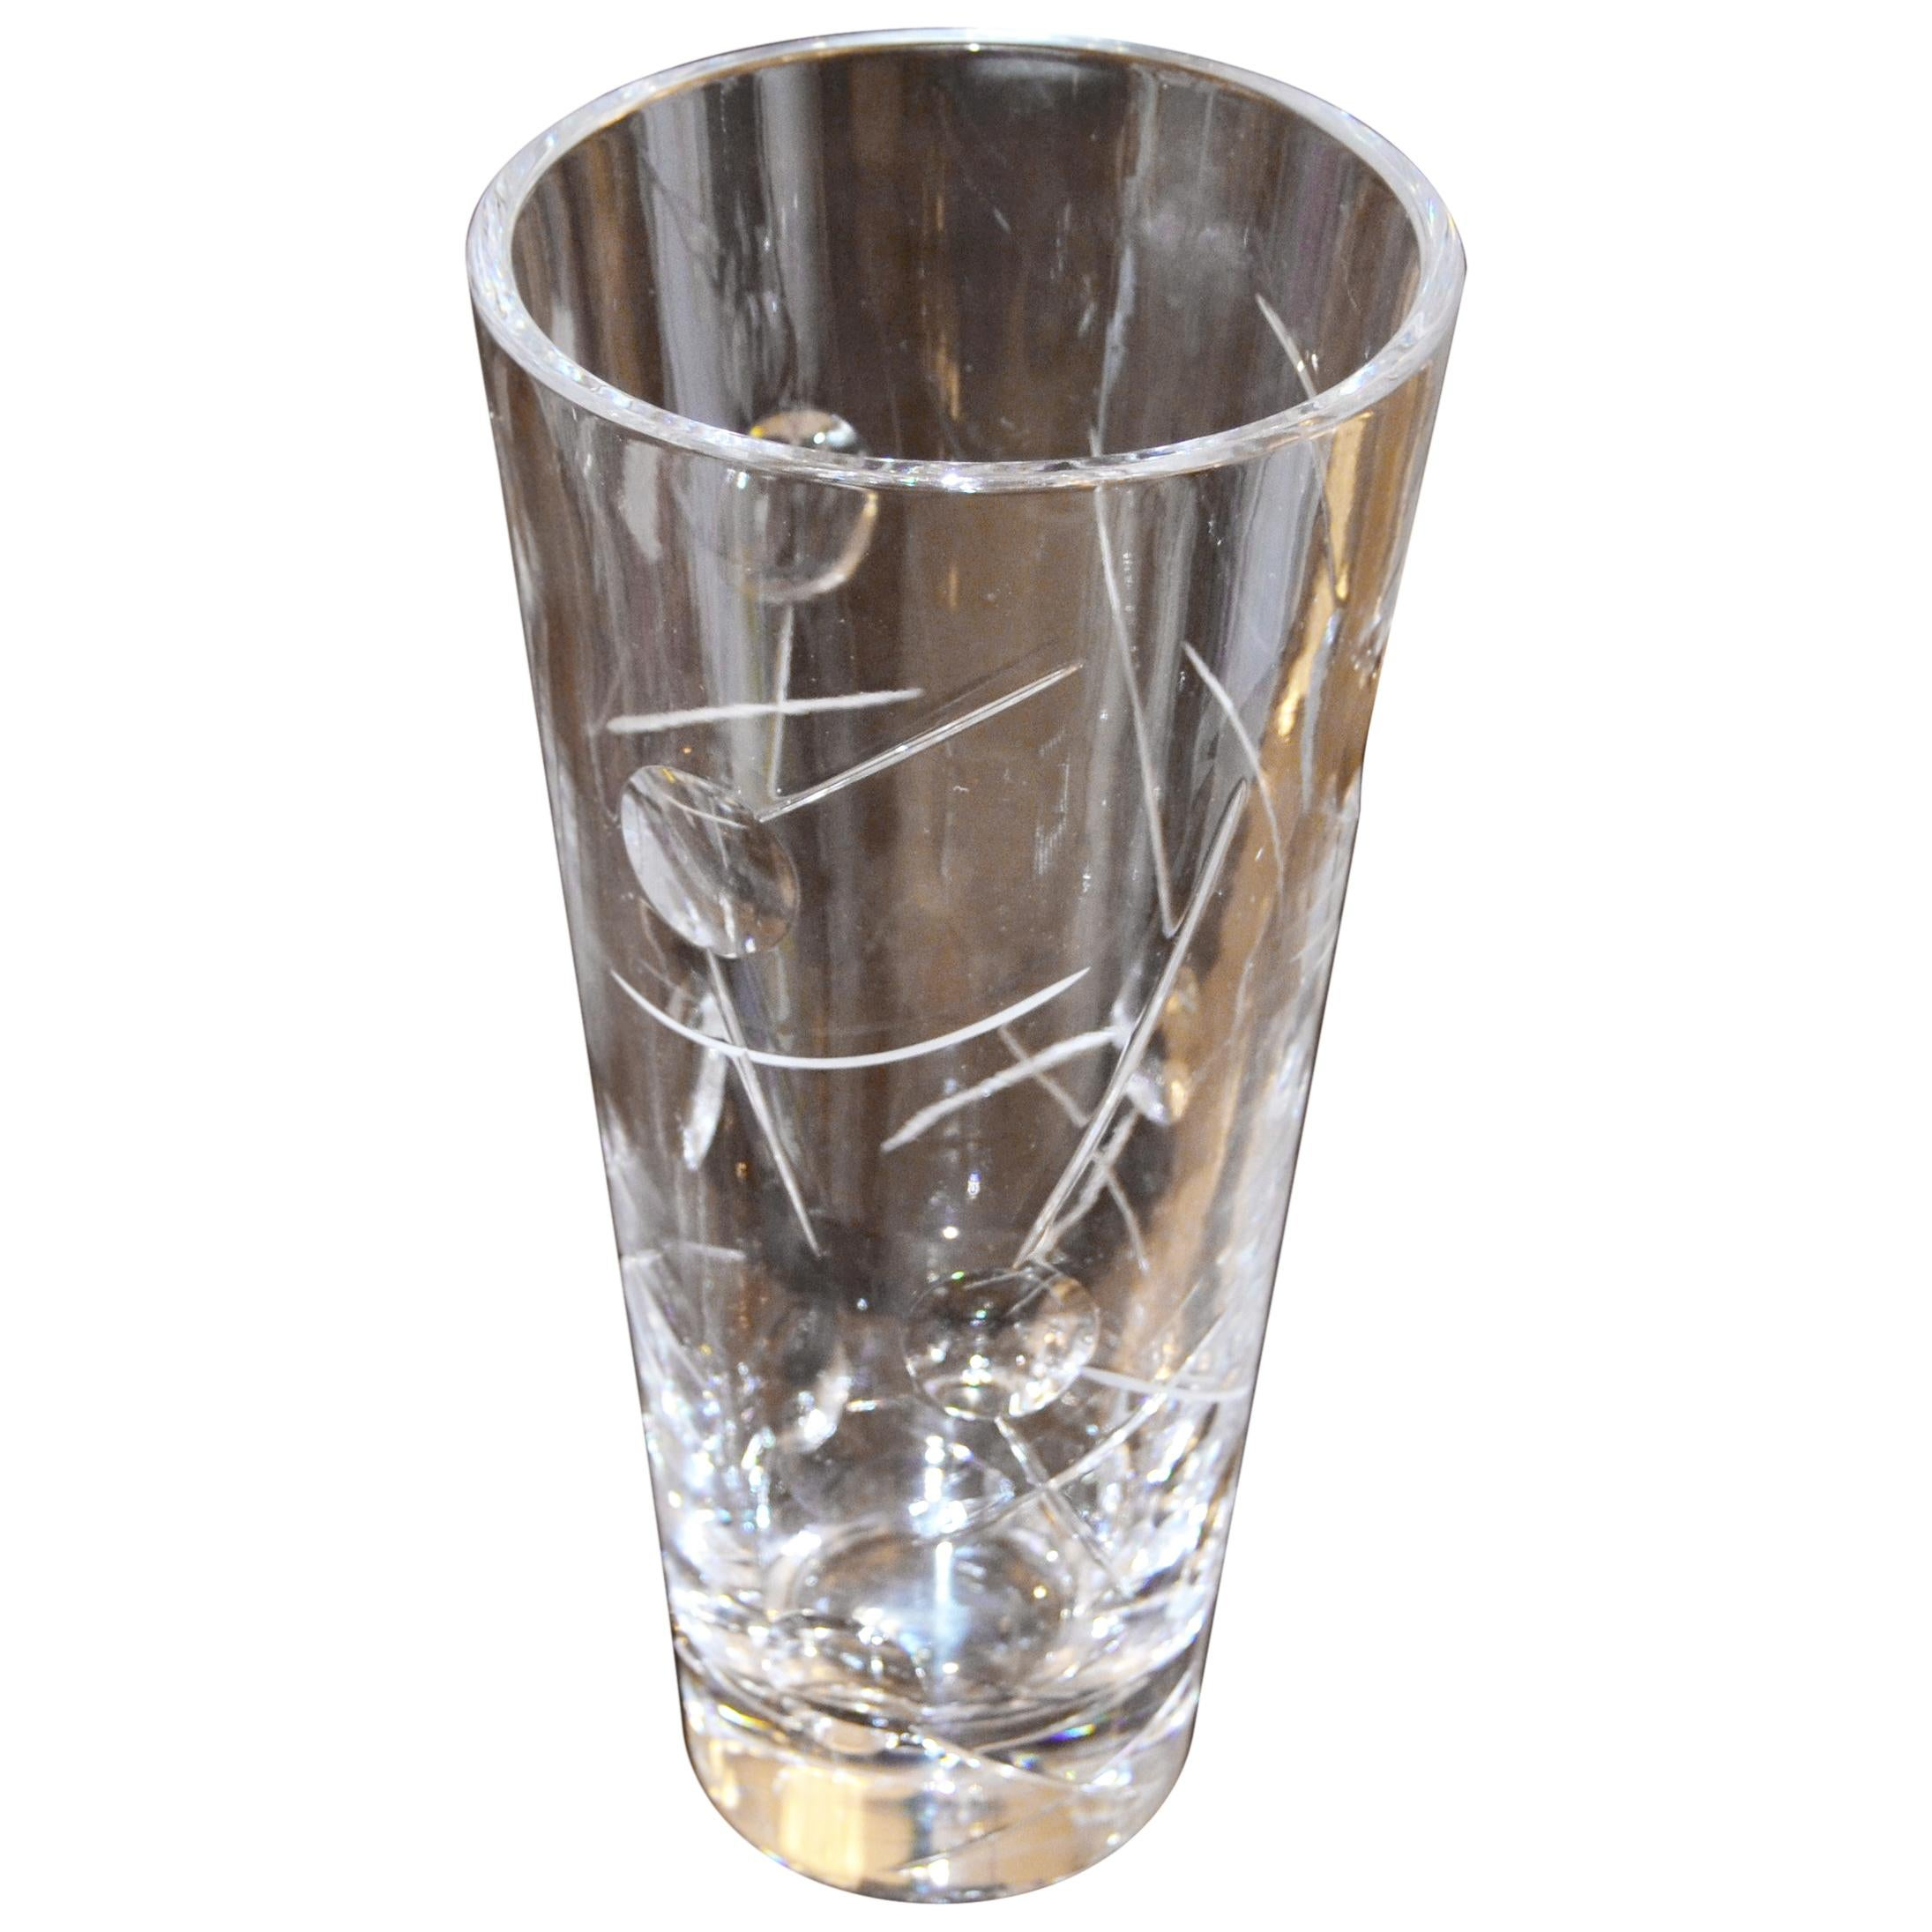 Royal Doulton Cut Crystal Vase with Bubbles and Etching, England